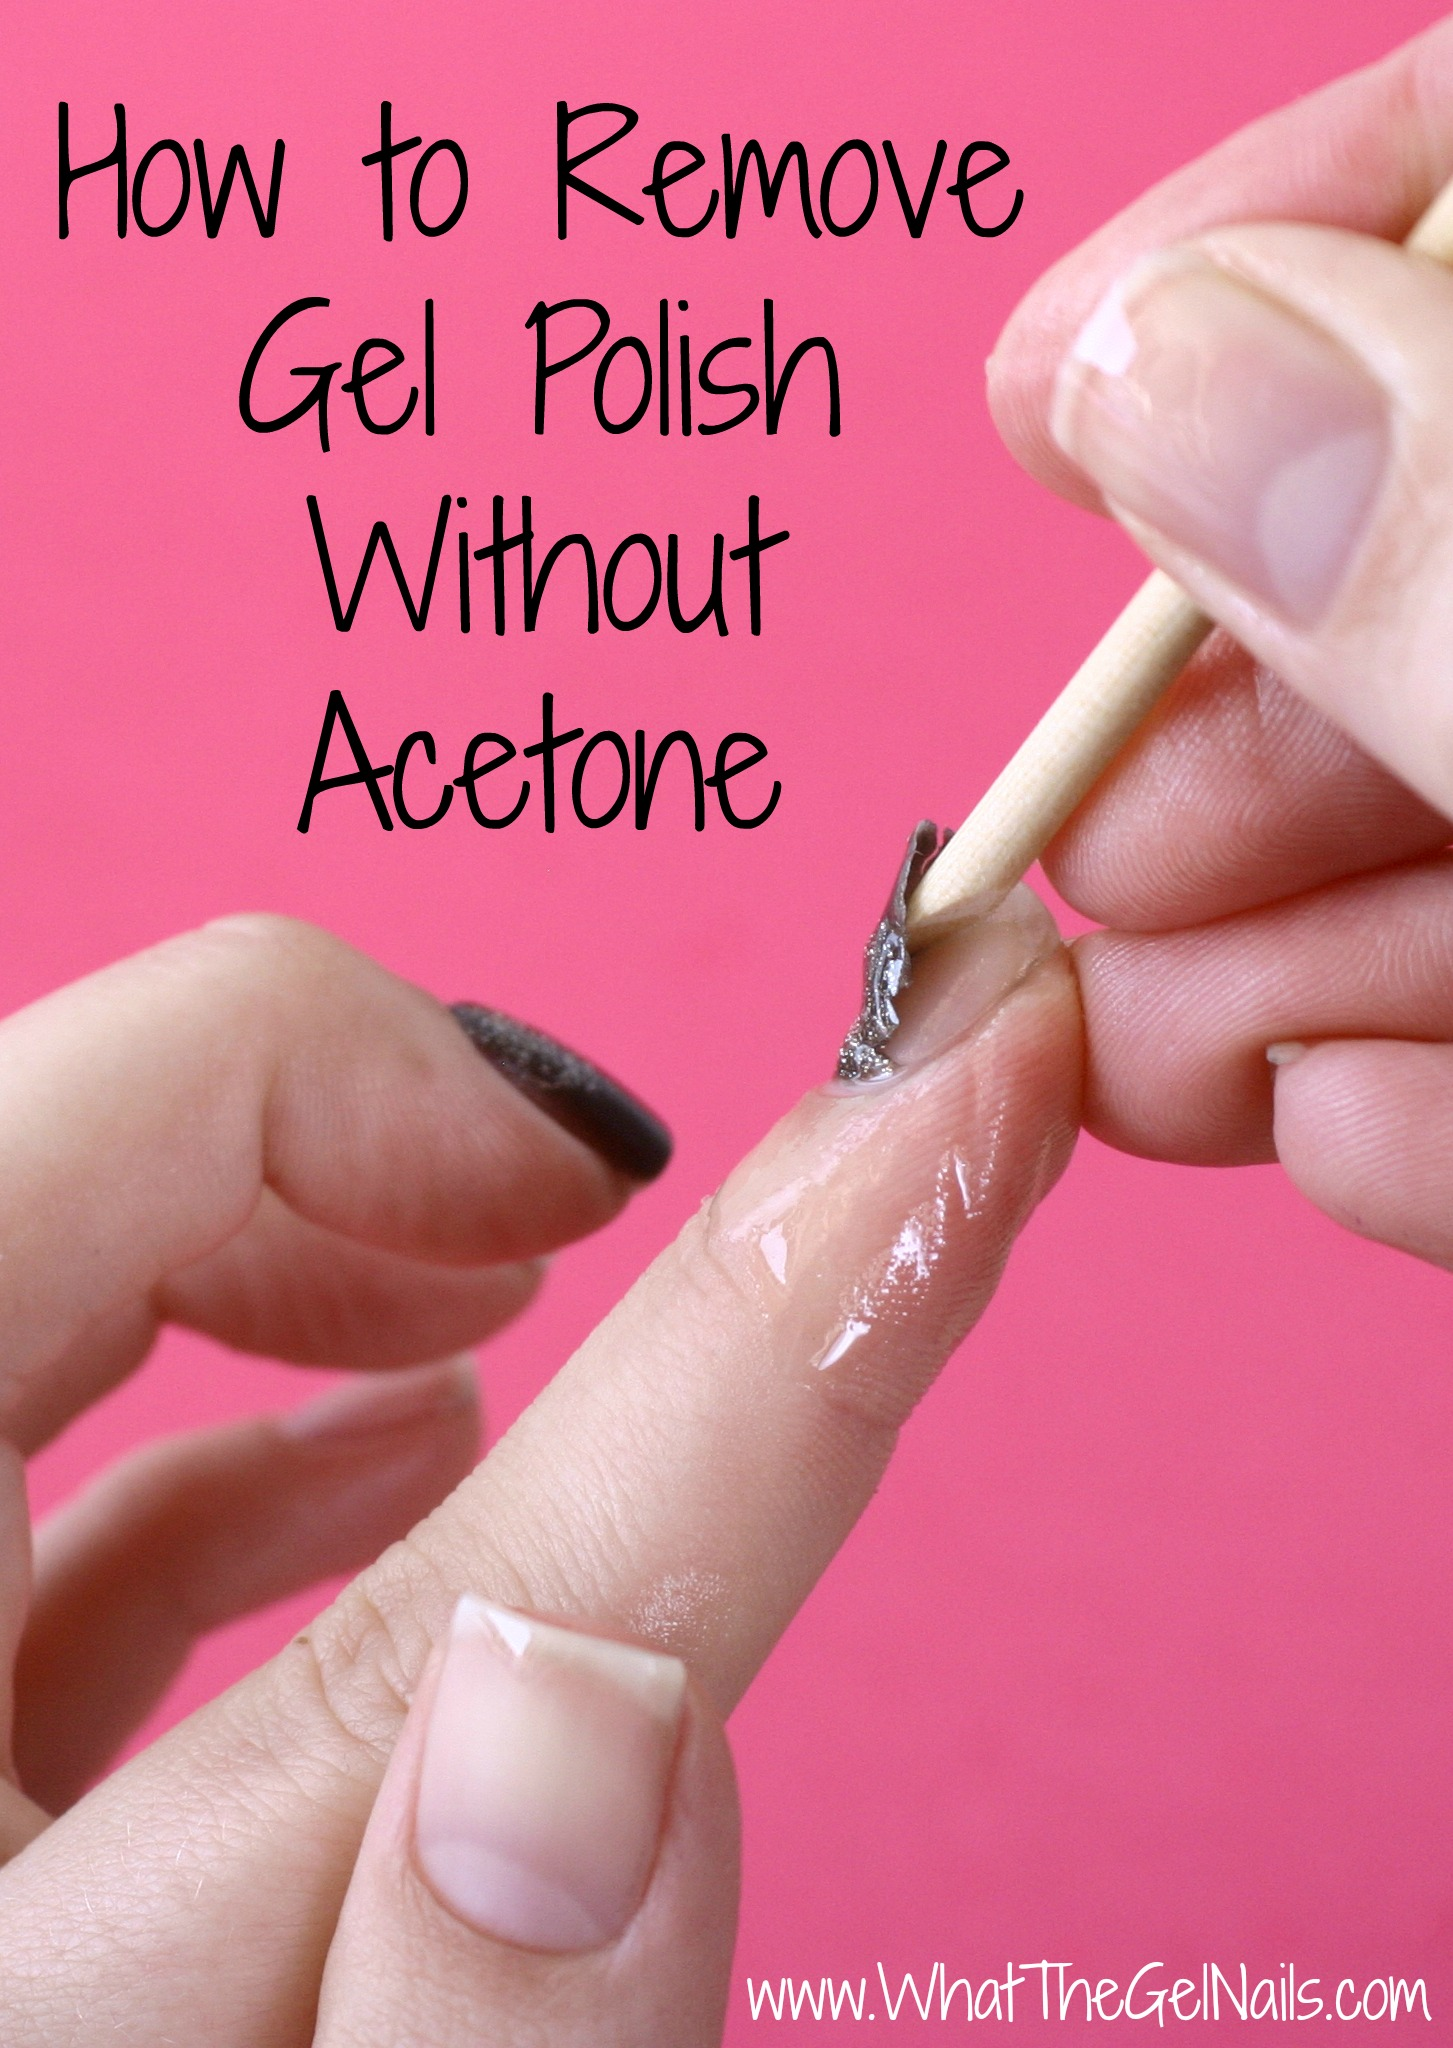 How to remove gel polish without acetone remove gel polish without acetone solutioingenieria